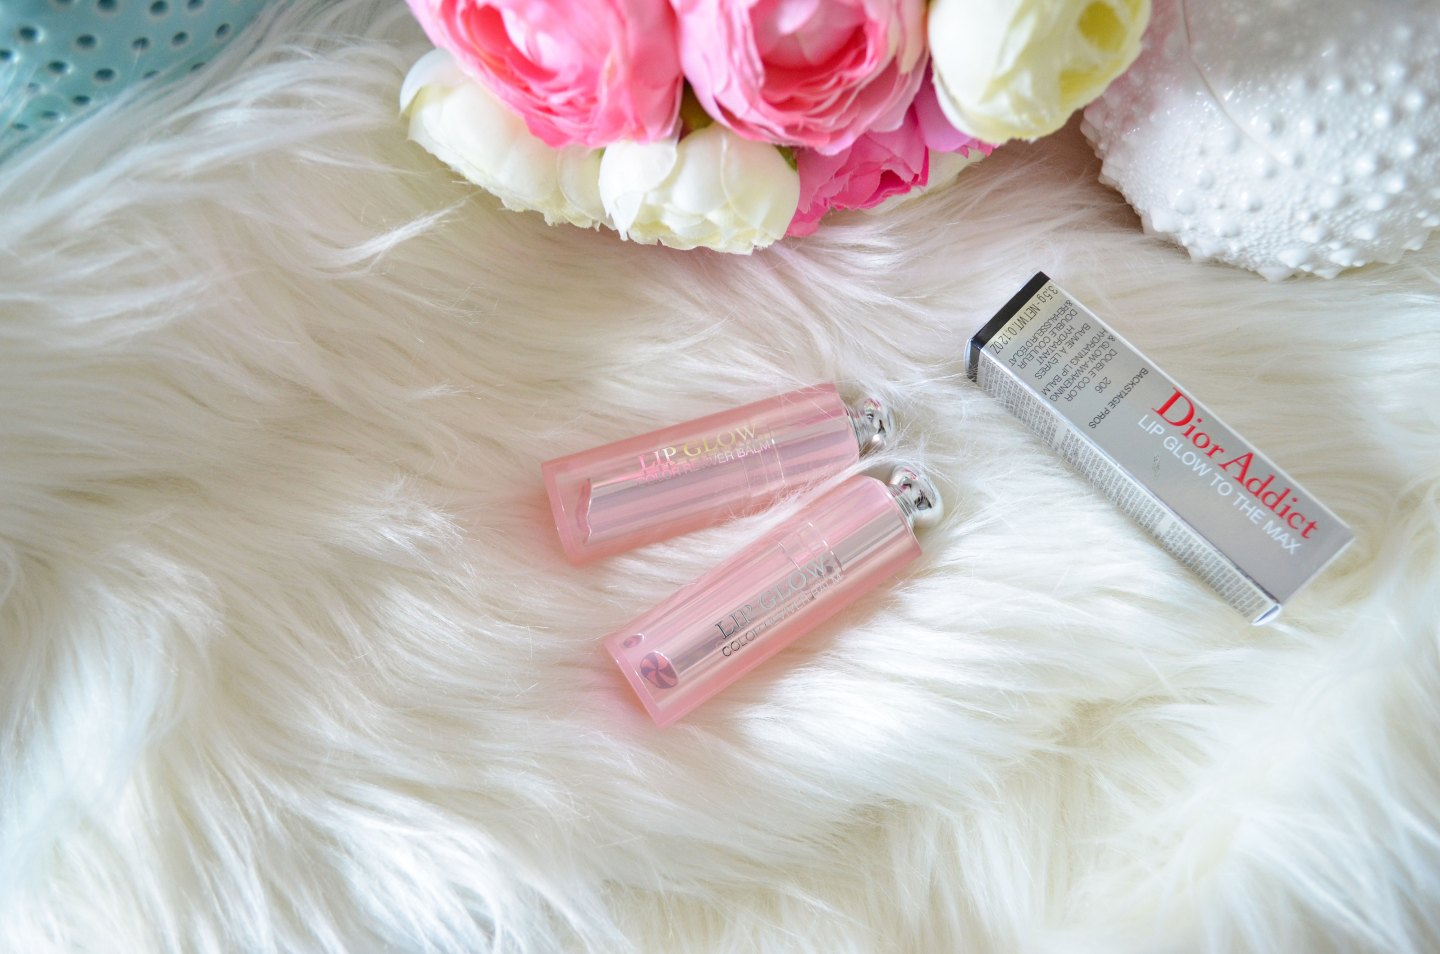 Recensisco i nuovi Dior Addict Lip Glow To The Max